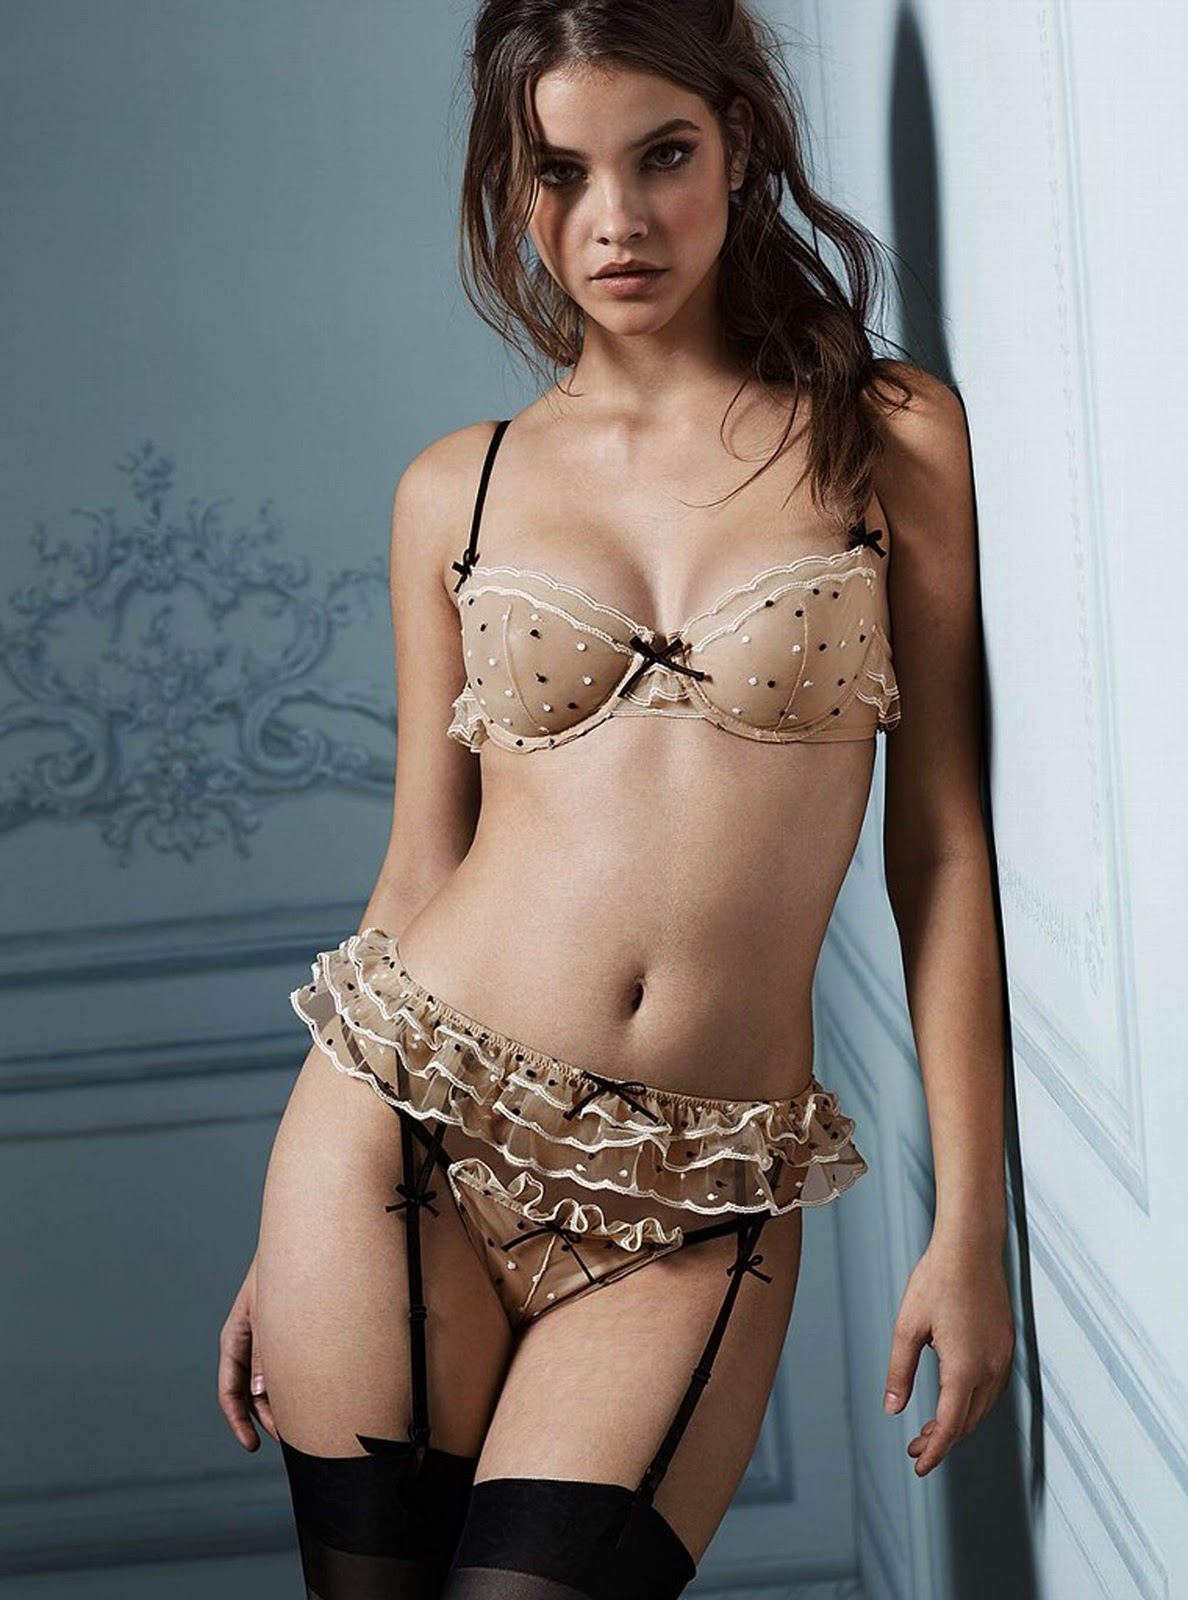 Barbara Palvin Pictures Hot Famous Celebrities